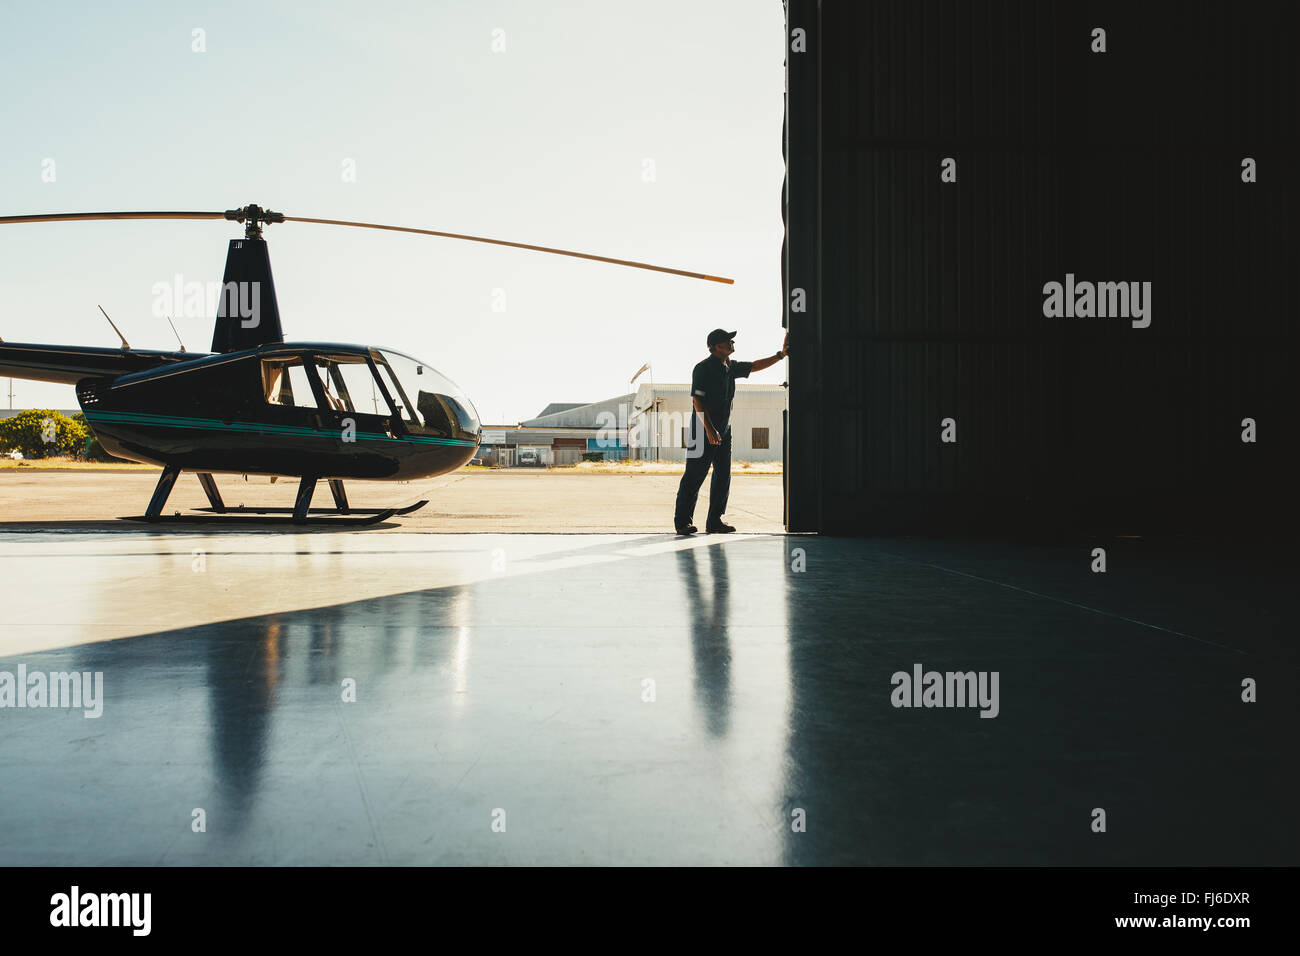 Mechanic opening the door of a airplane hangar with a helicopter - Stock Image